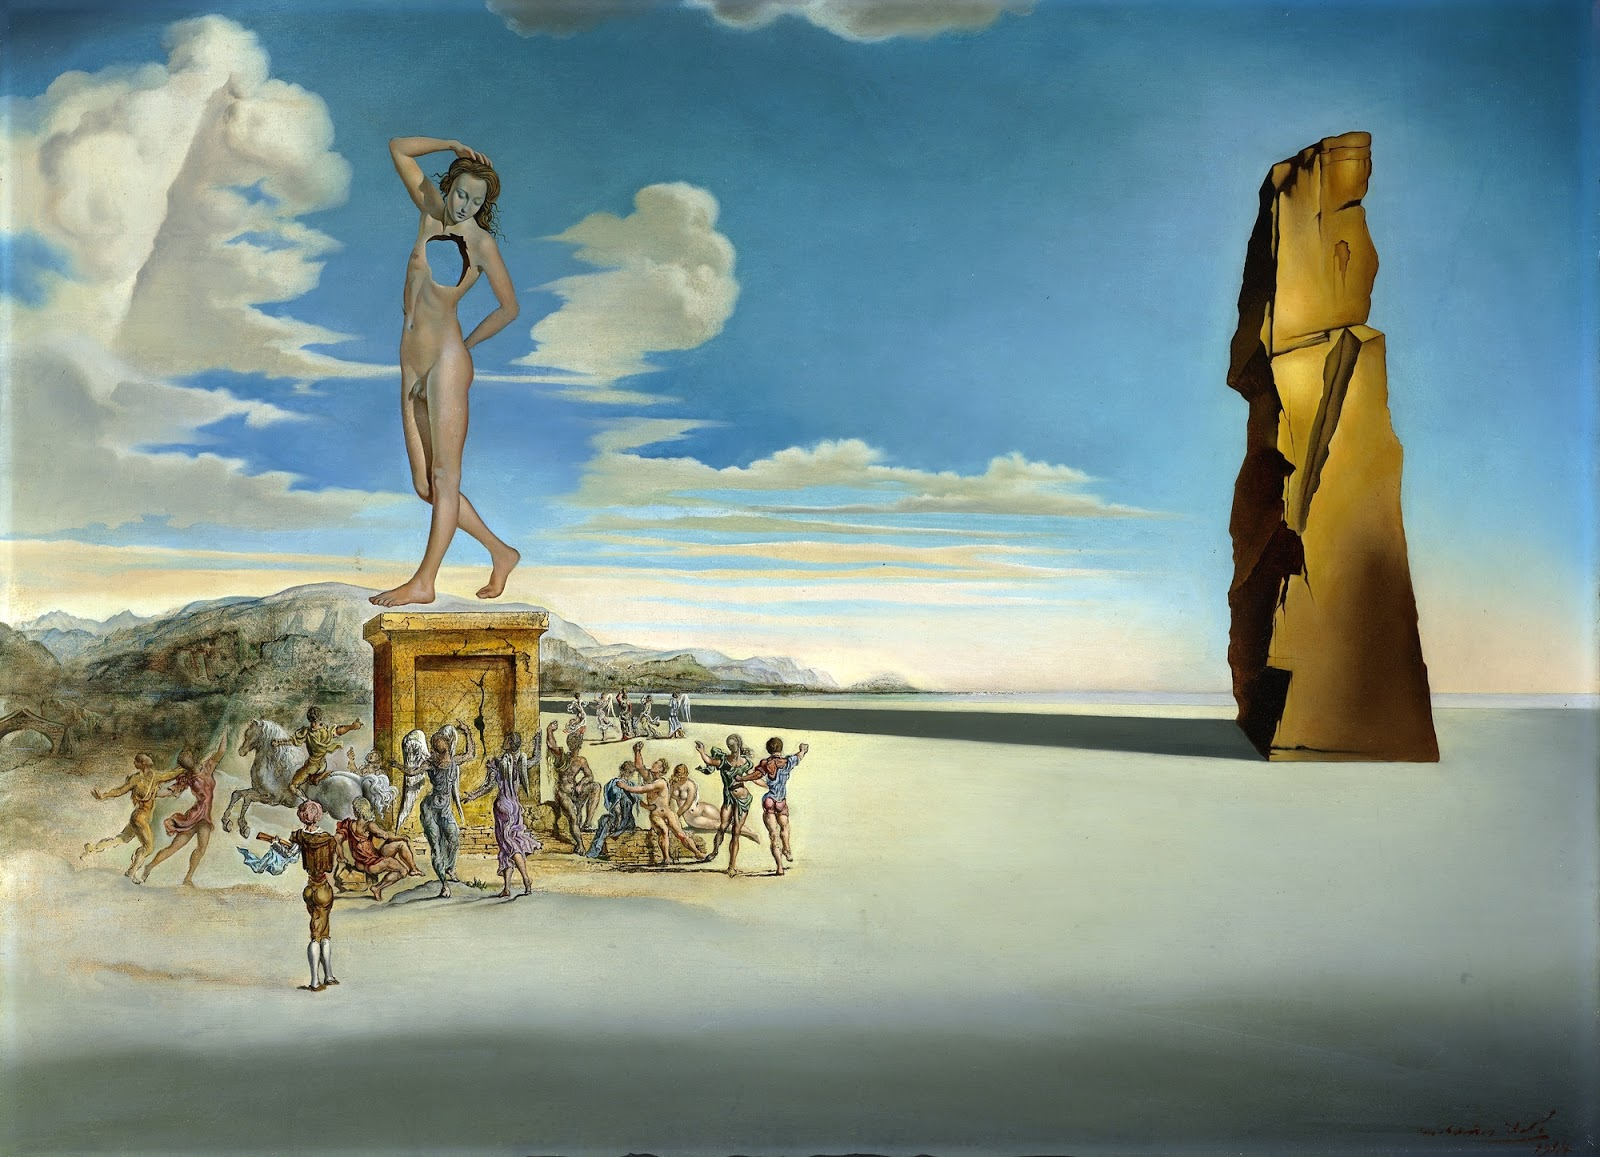 salvador dali s surrealist paintings a surprising catalyst for